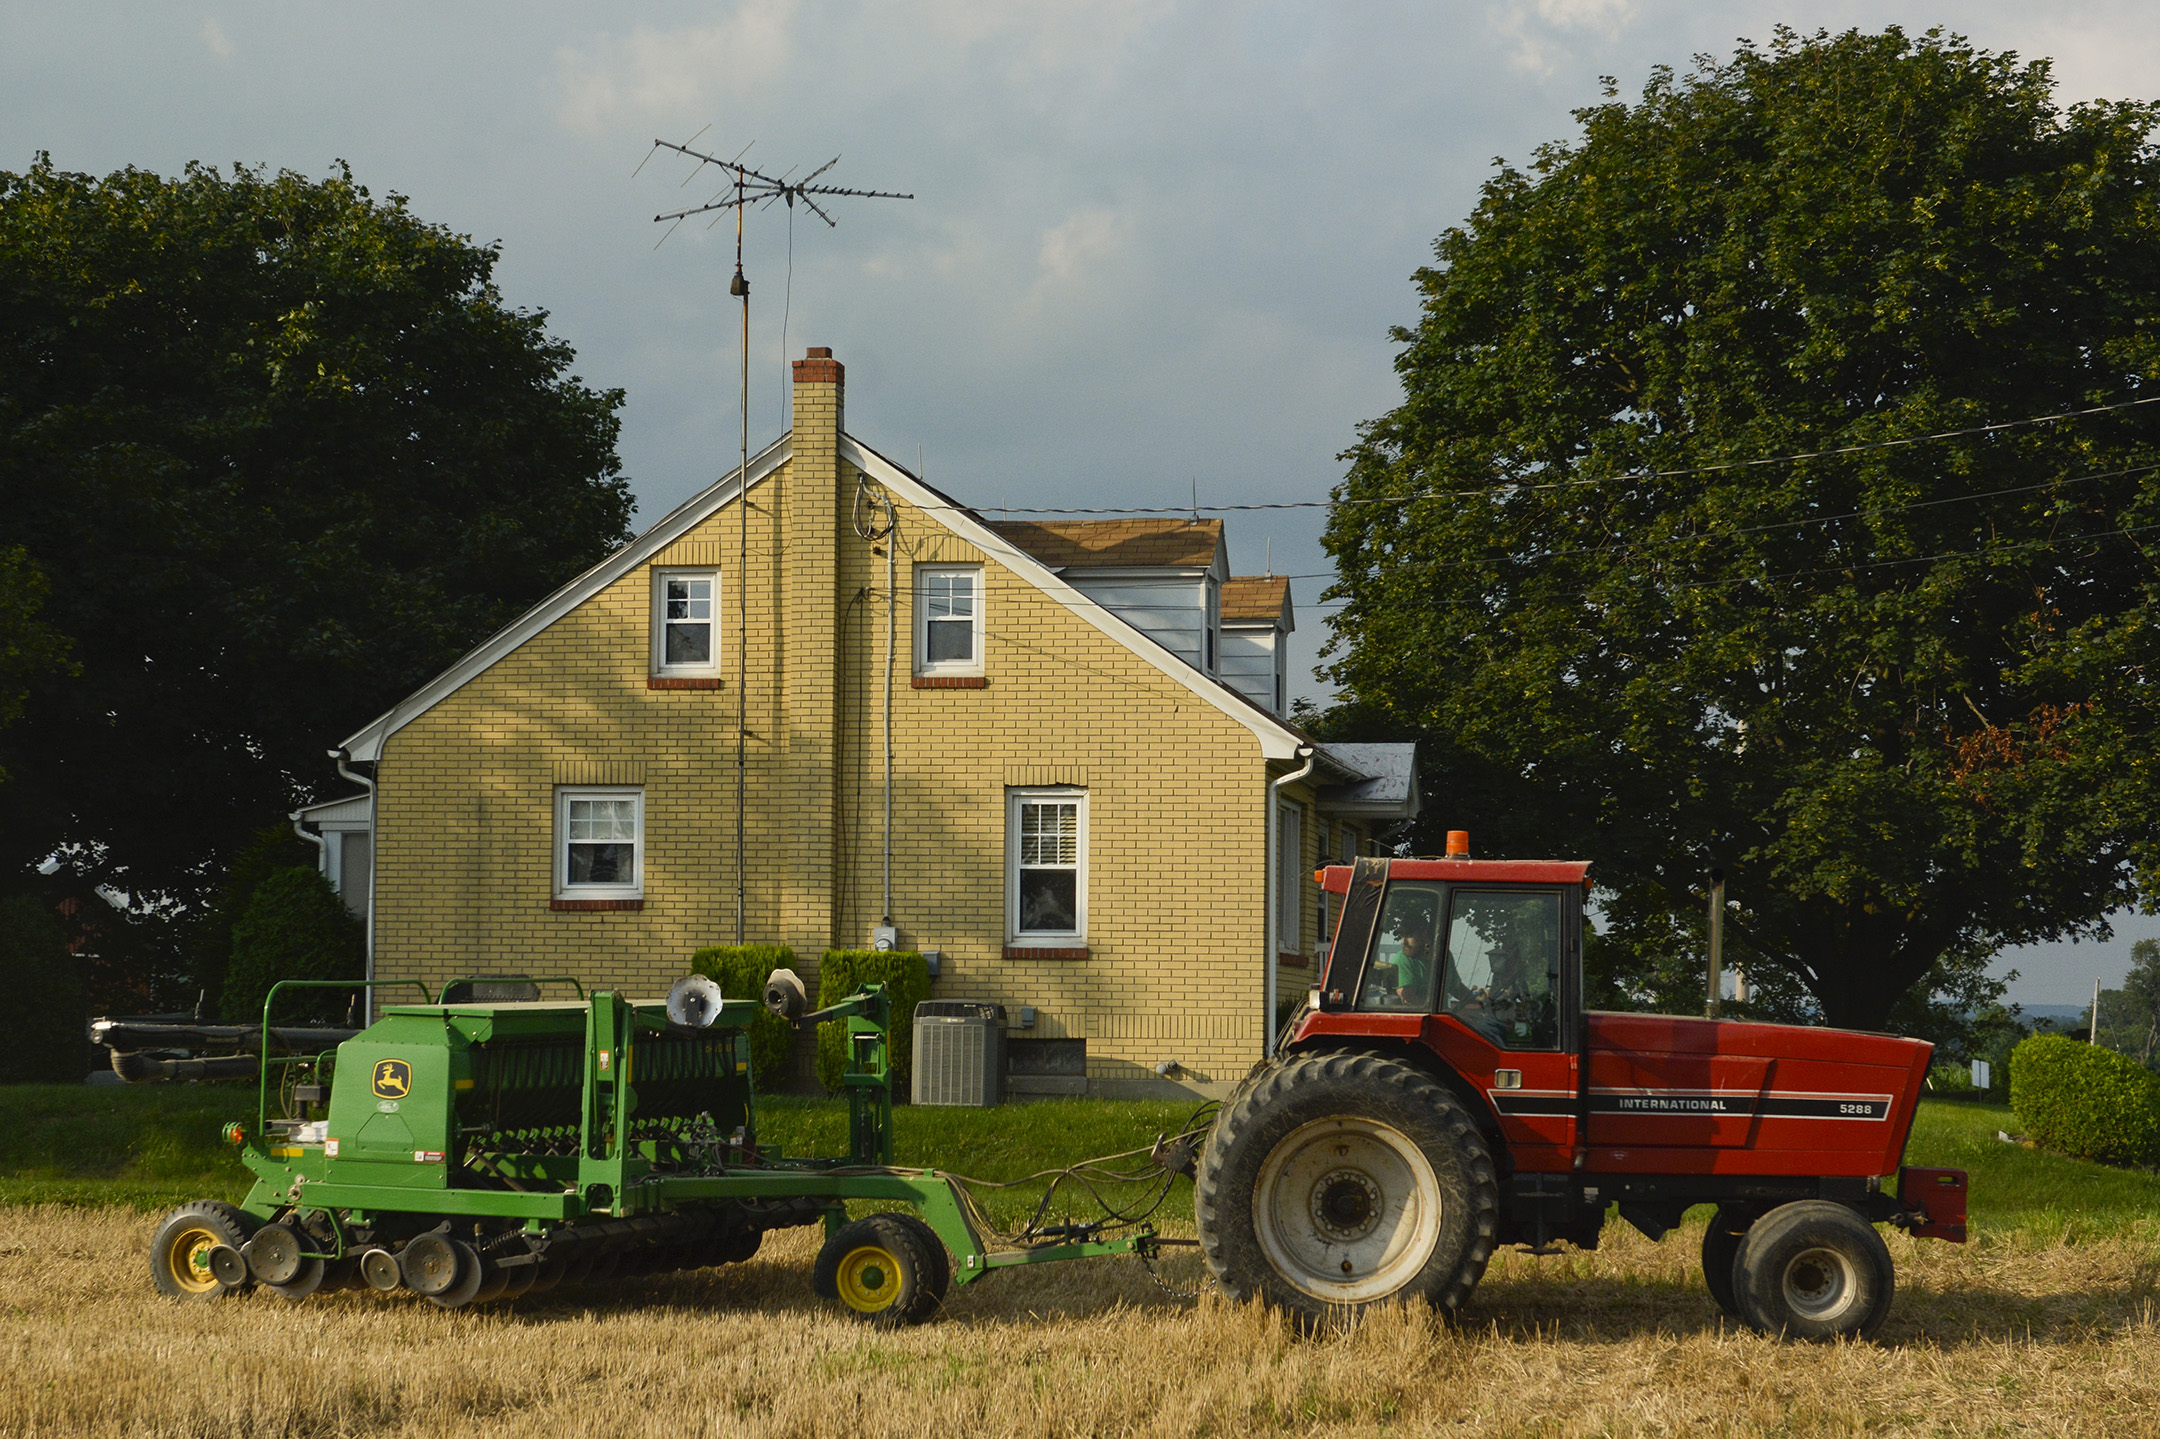 Lee Gauker of Fleetwood works out in the fields at one of the Gauker Family's properties in Fleetwood.